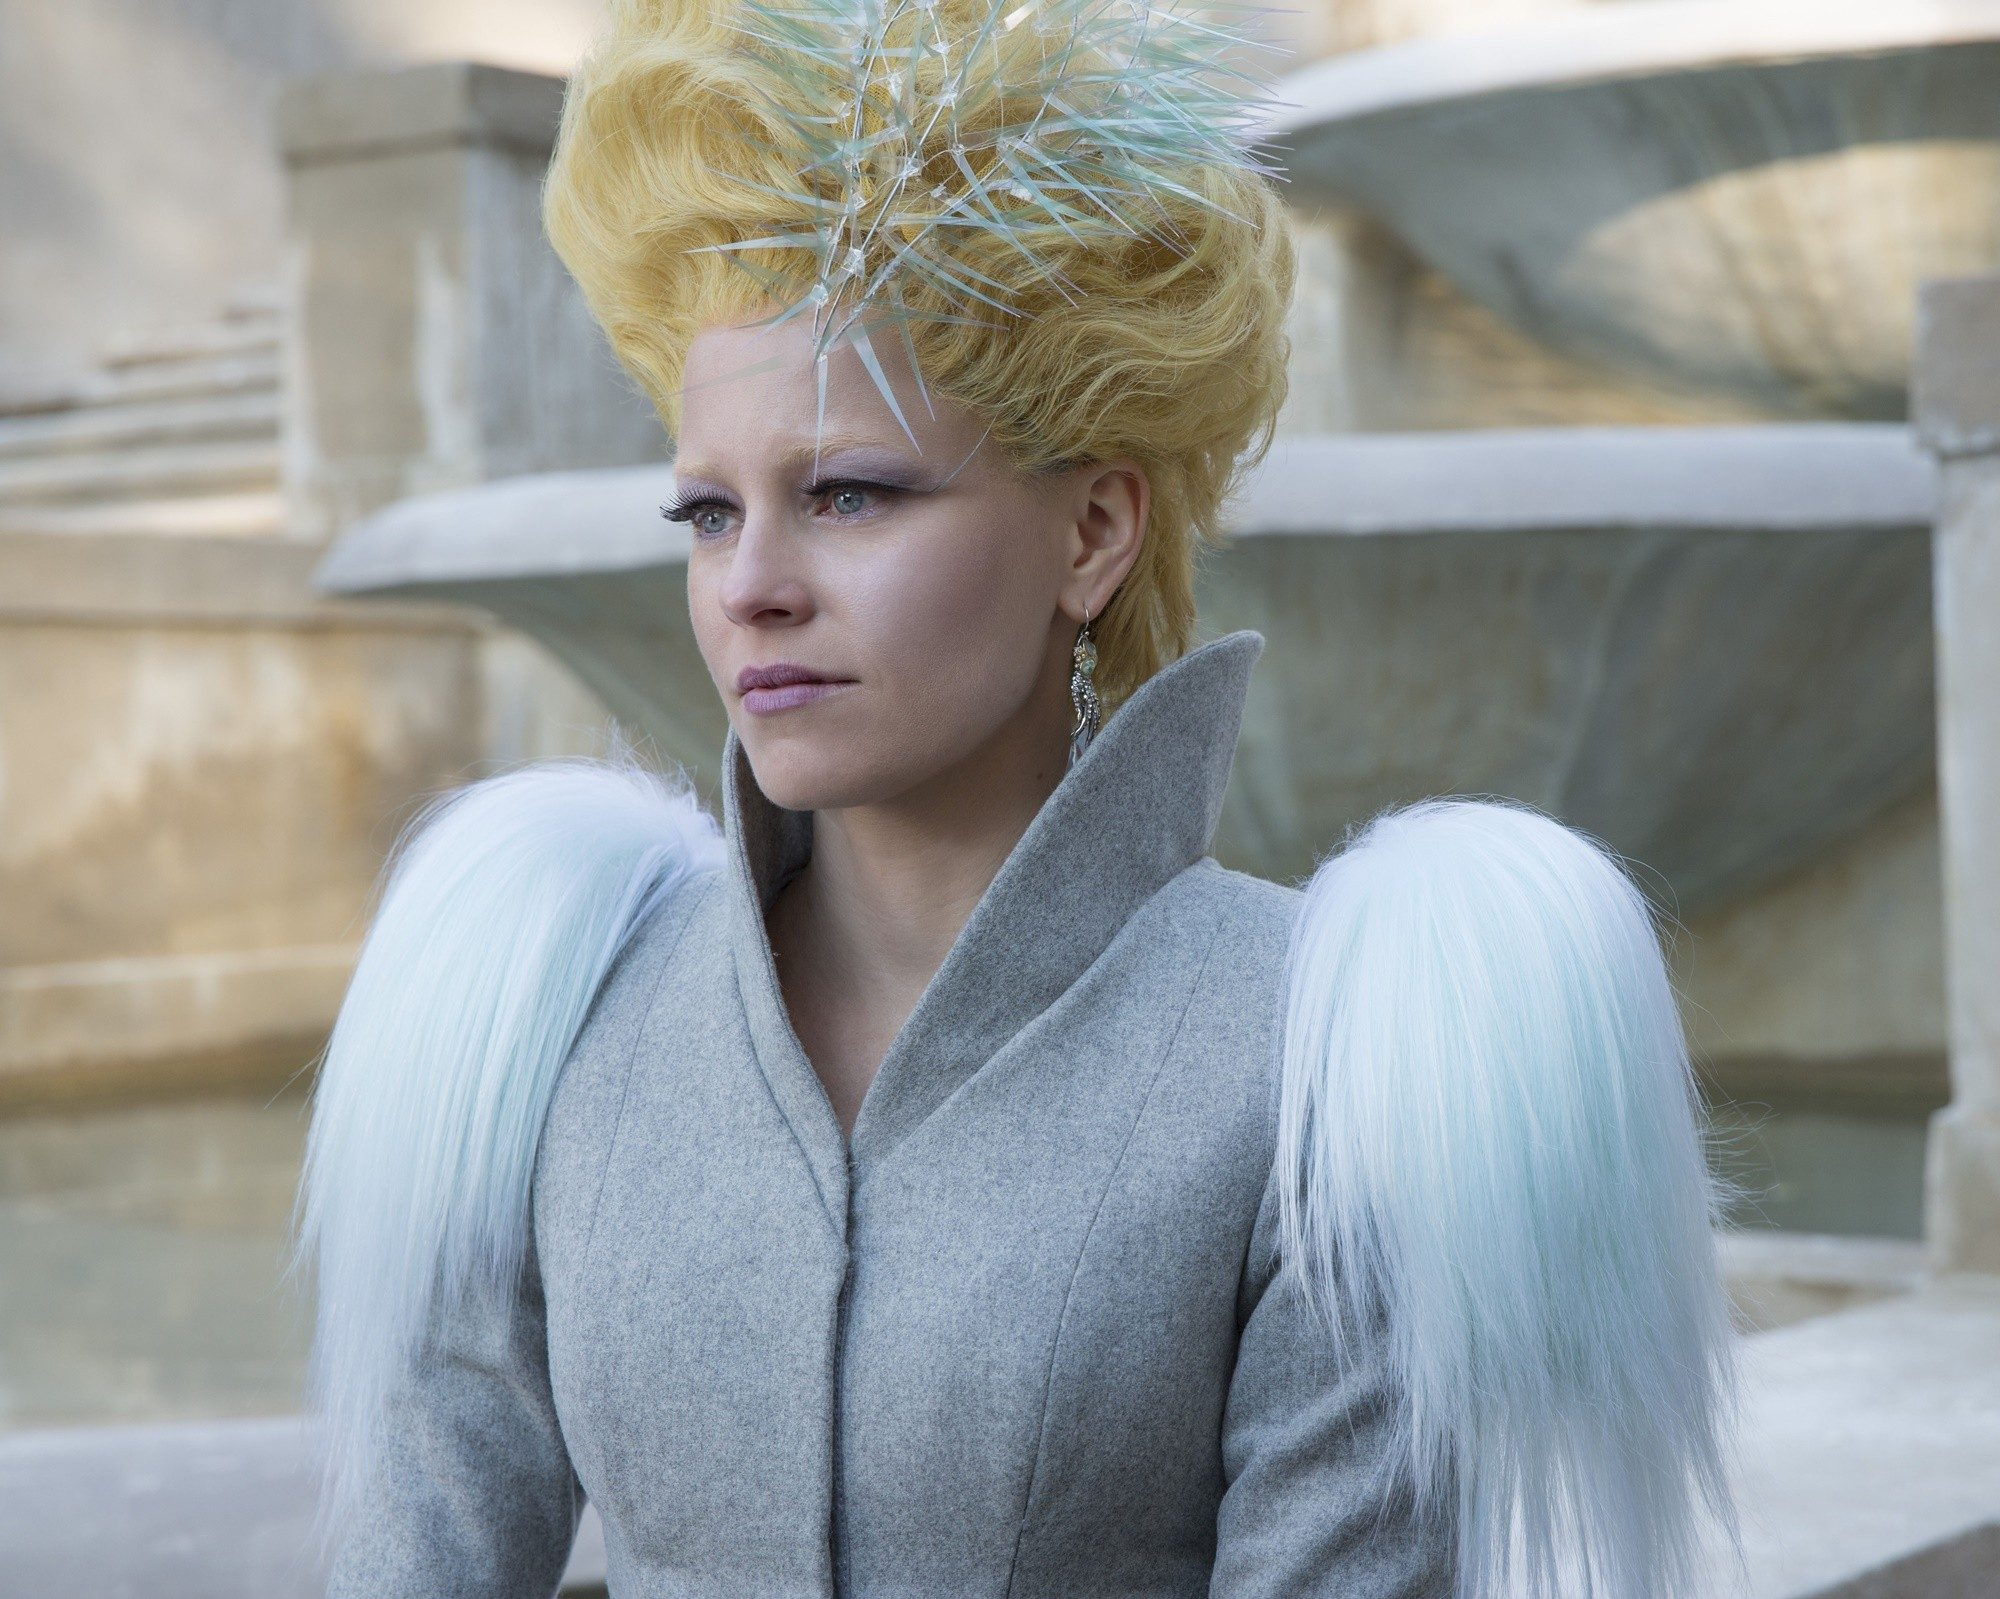 Effie Trinket | Wiki The Hunger Games | FANDOM powered by Wikia